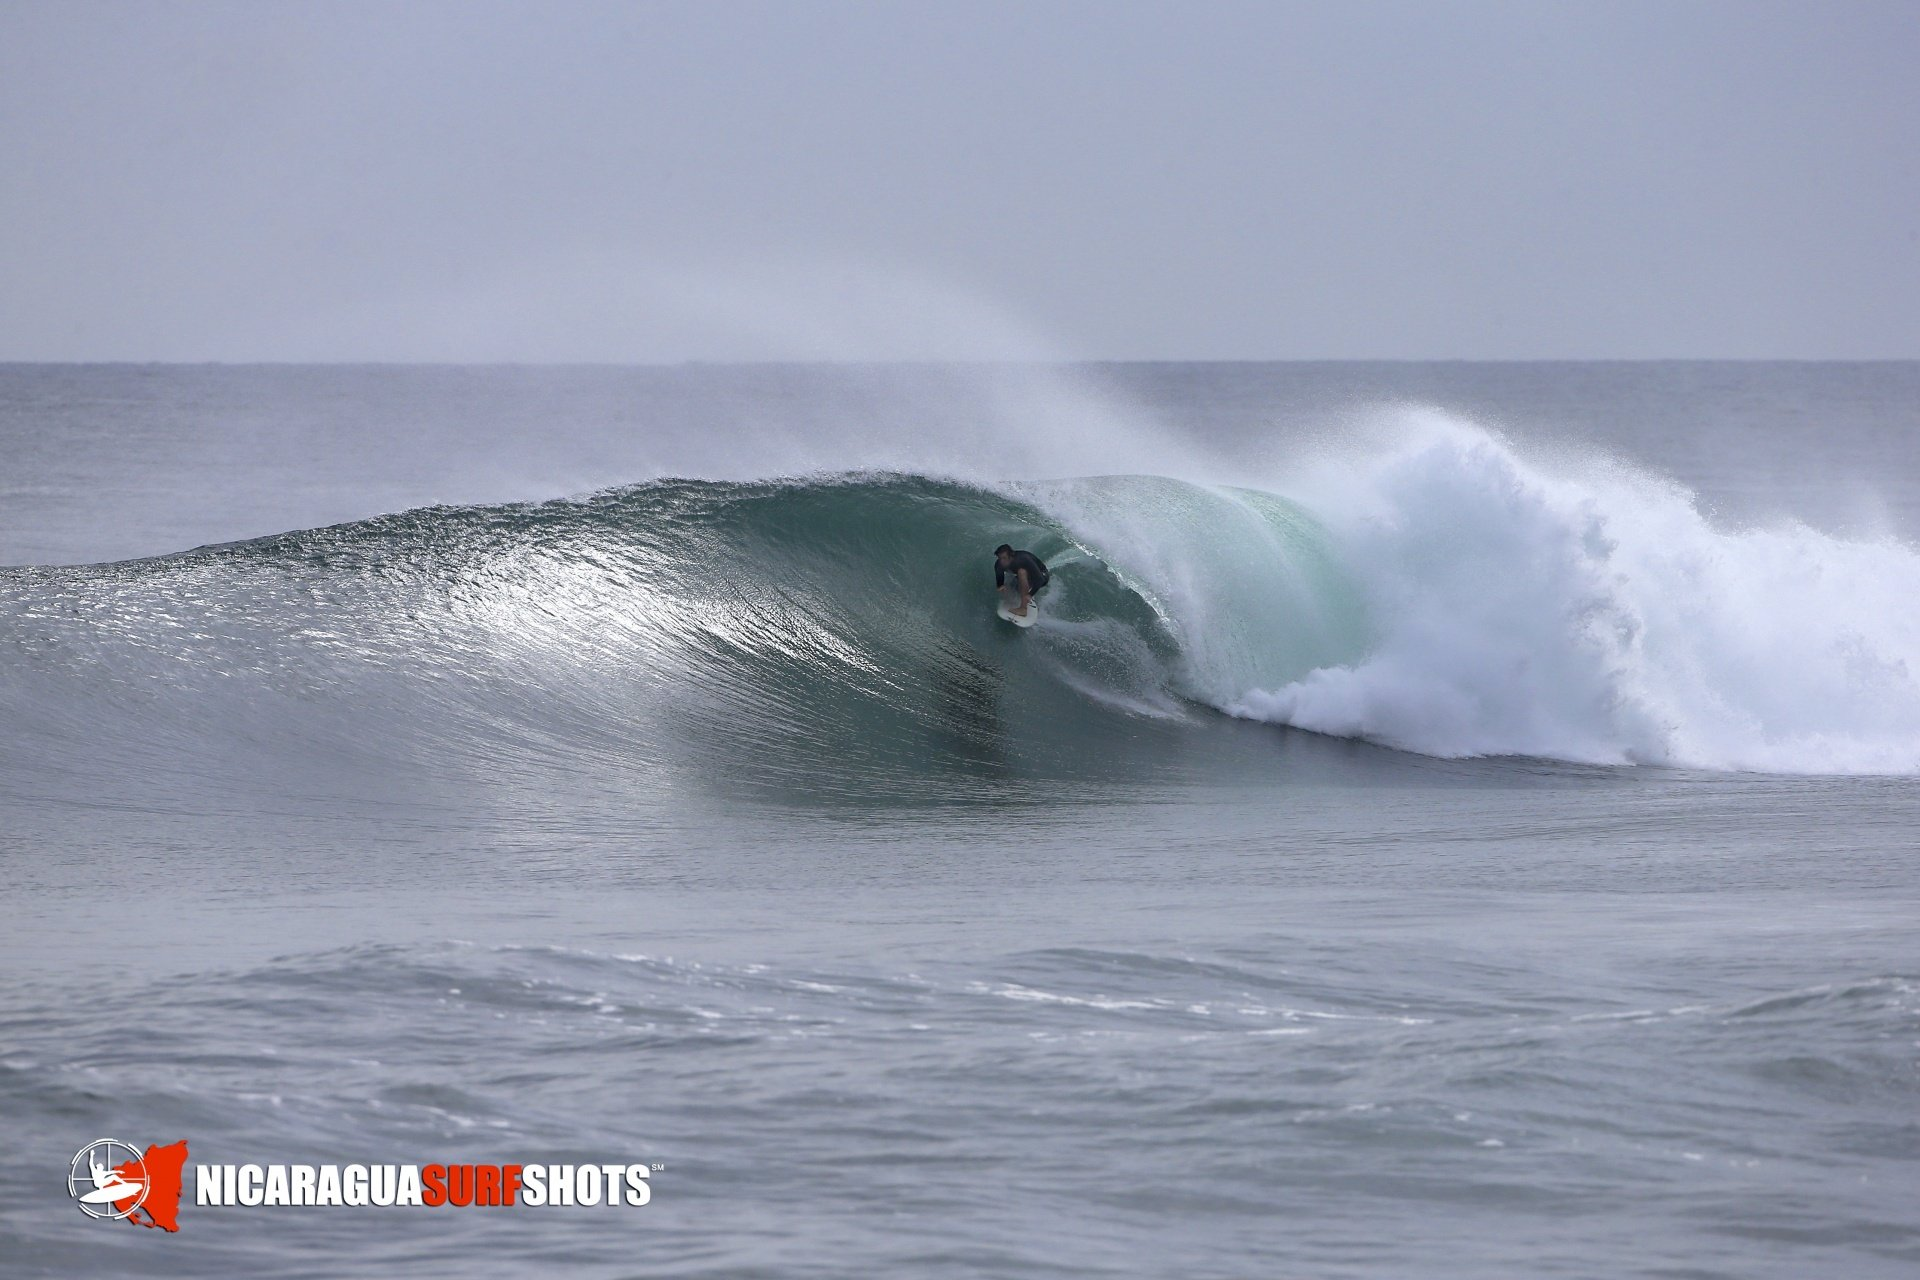 Nica Surf Shots's photo of Playa Colorado